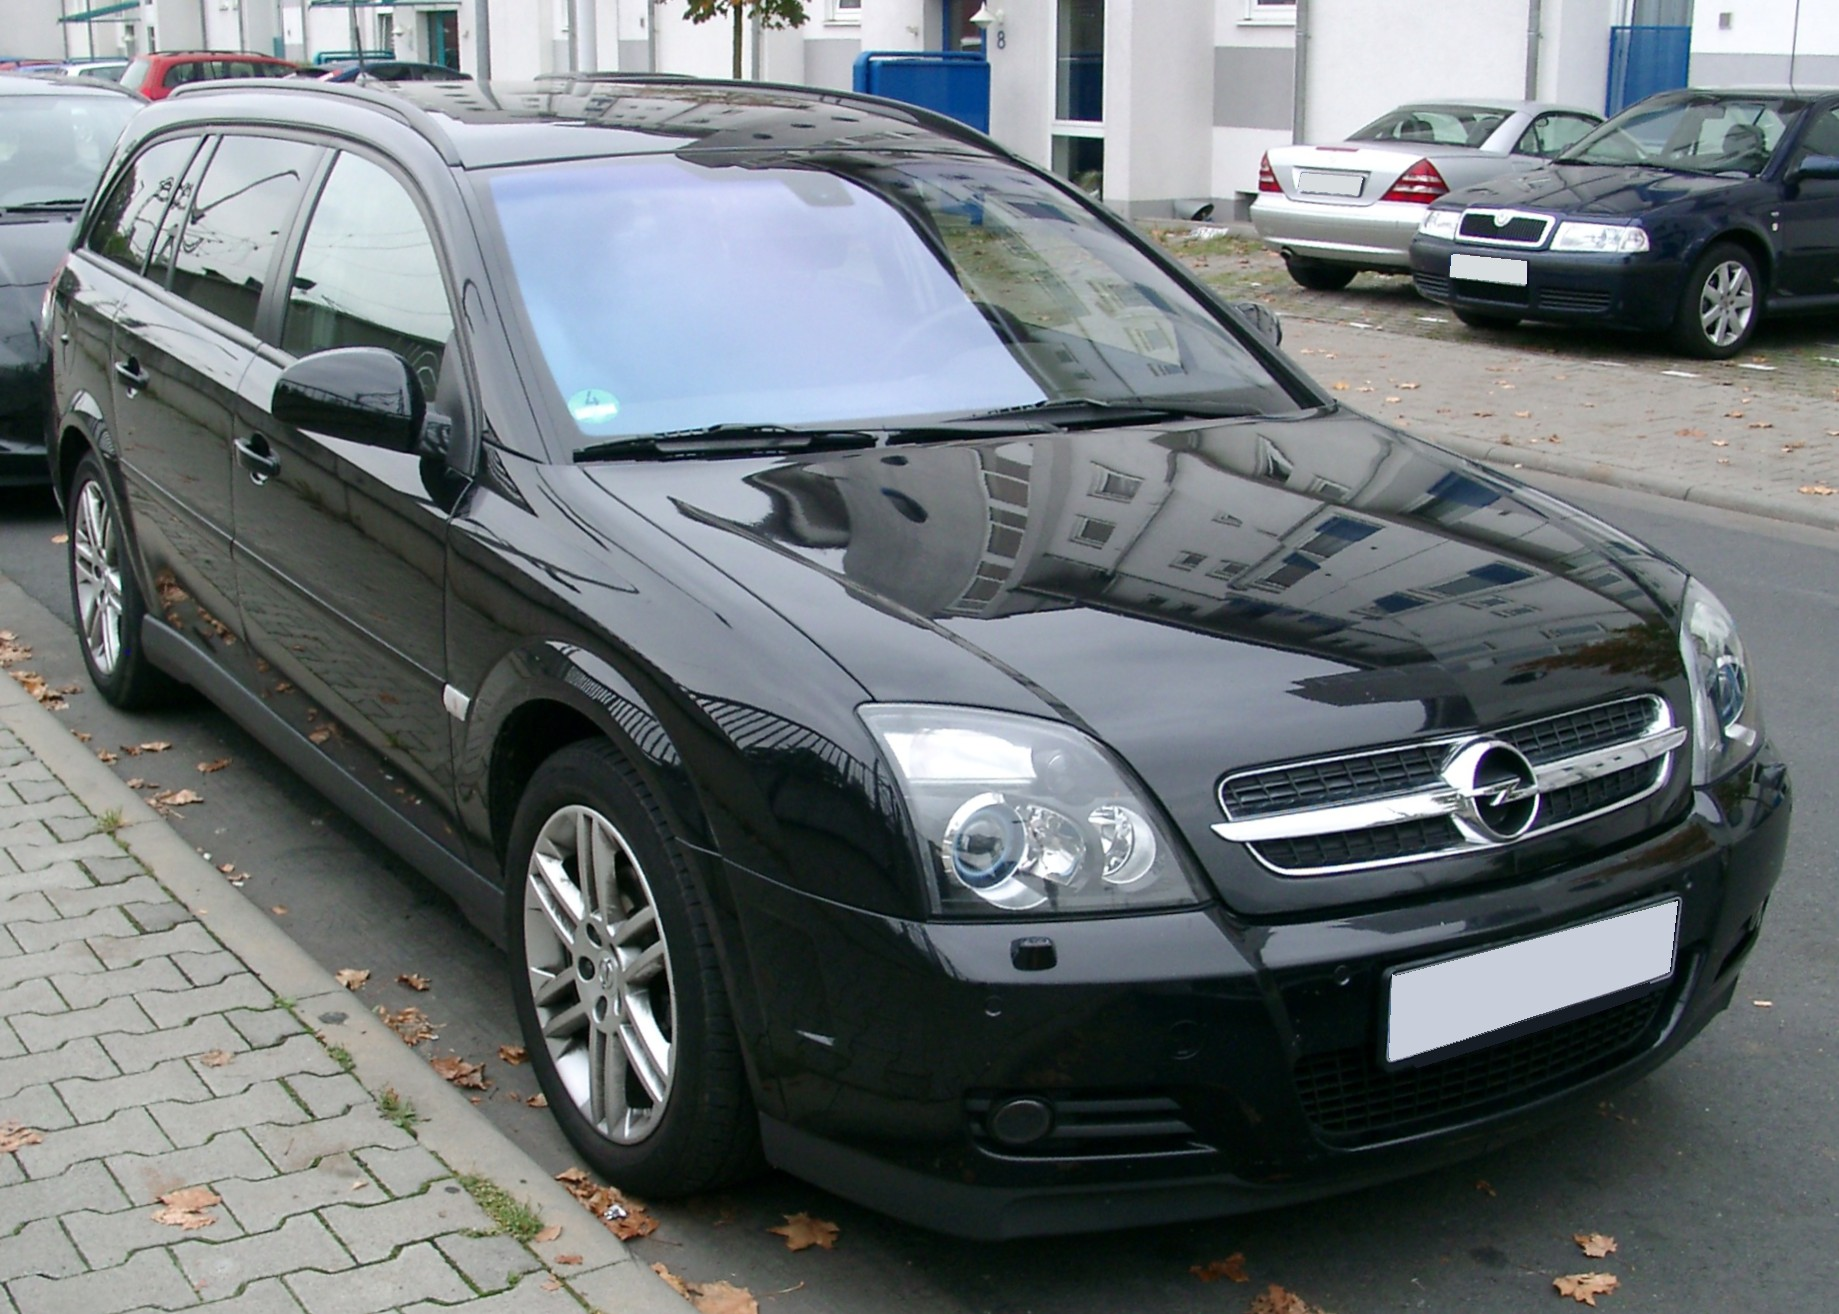 opel vectra caravan technical details history photos on better parts ltd. Black Bedroom Furniture Sets. Home Design Ideas